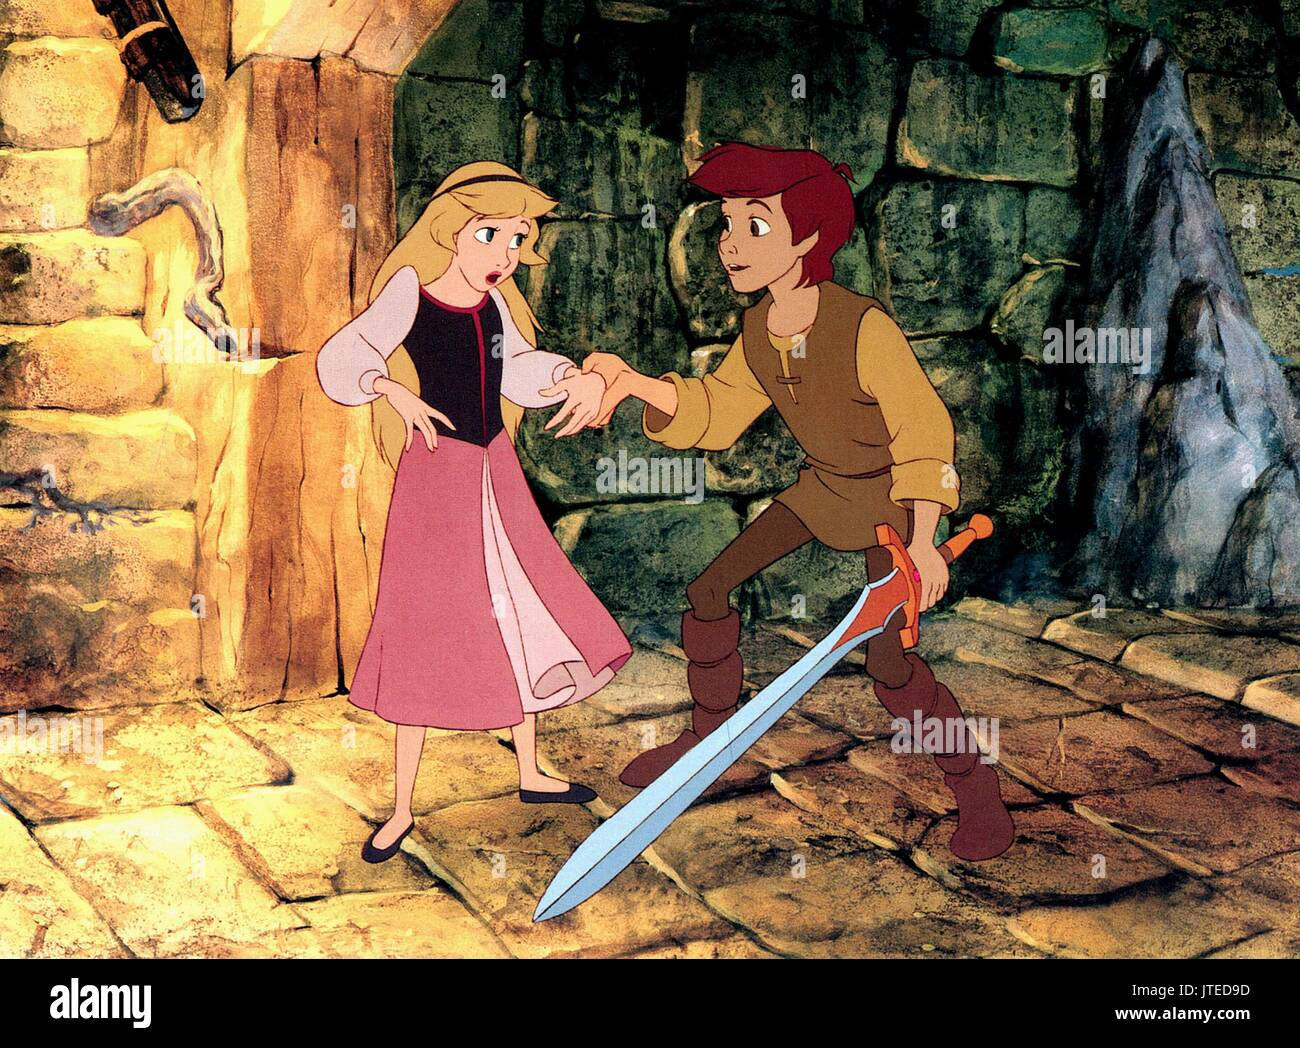 Taran eilonwy the black cauldron 1985 stock photo 152752473 alamy taran eilonwy the black cauldron 1985 altavistaventures Image collections